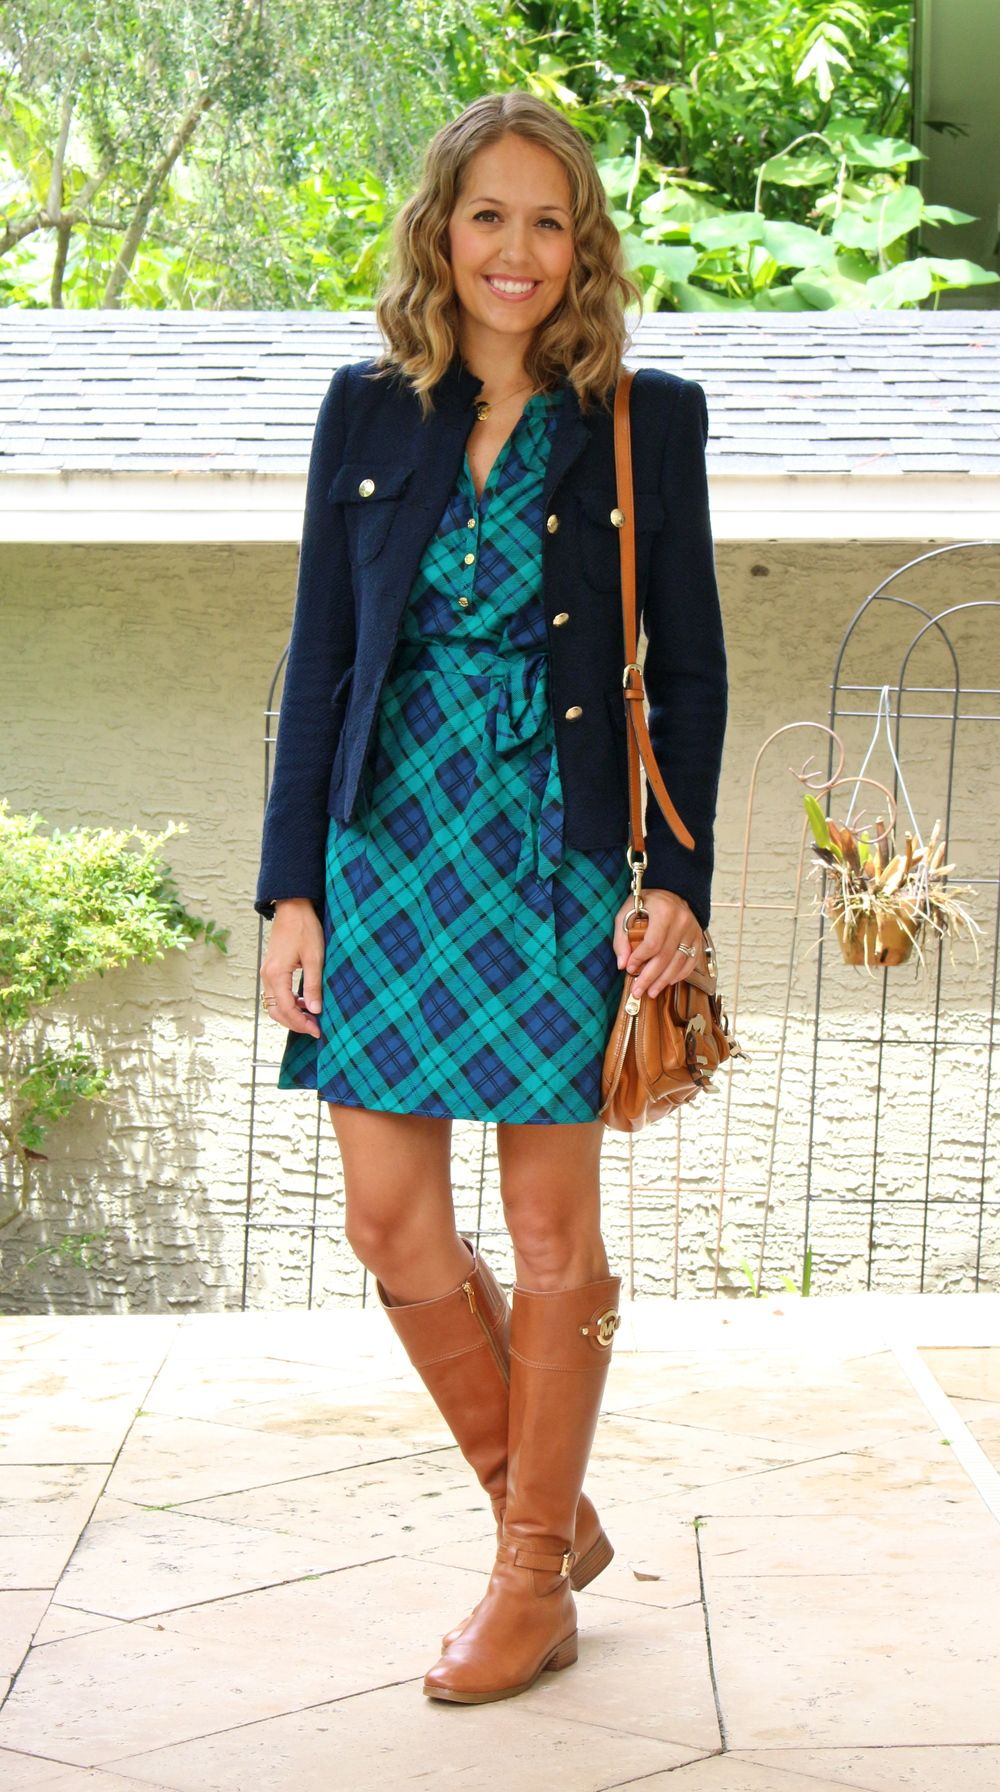 ba49868c0 Fall Fashion with Mud Pie | Dress it up | Pinterest | Js everyday ...